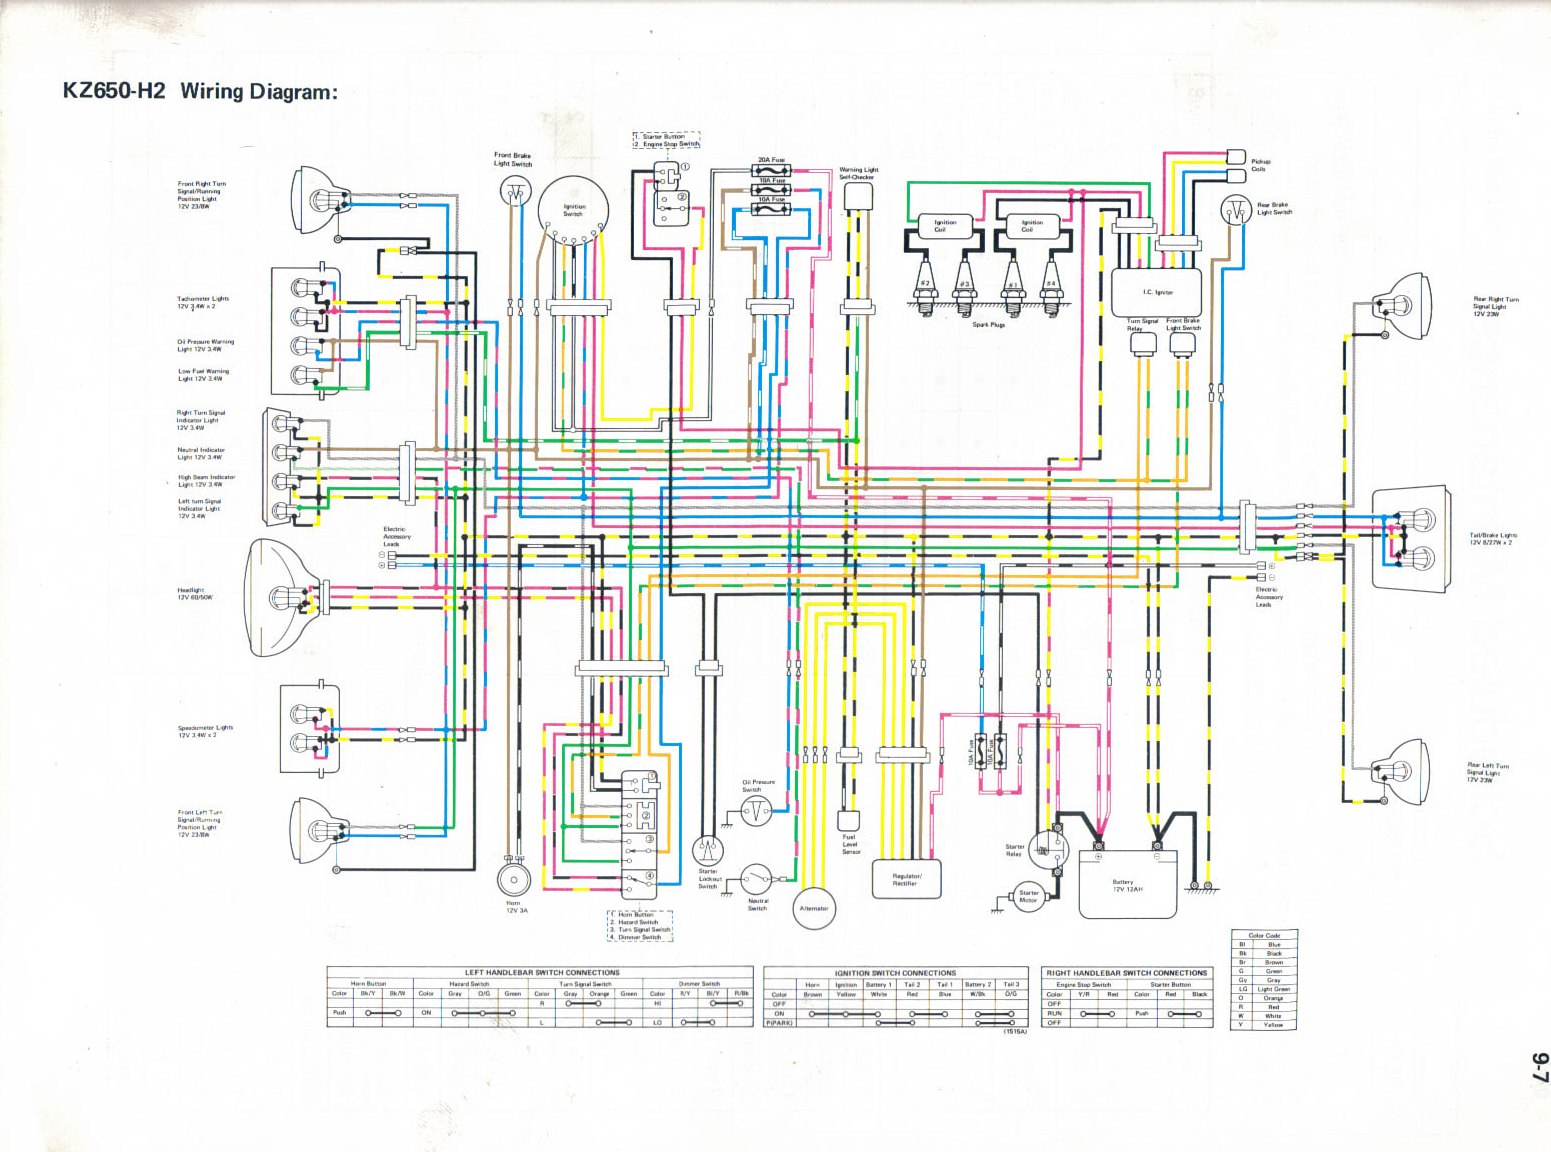 KZ650 H2 kz650 info wiring diagrams kawasaki wiring diagrams at gsmportal.co